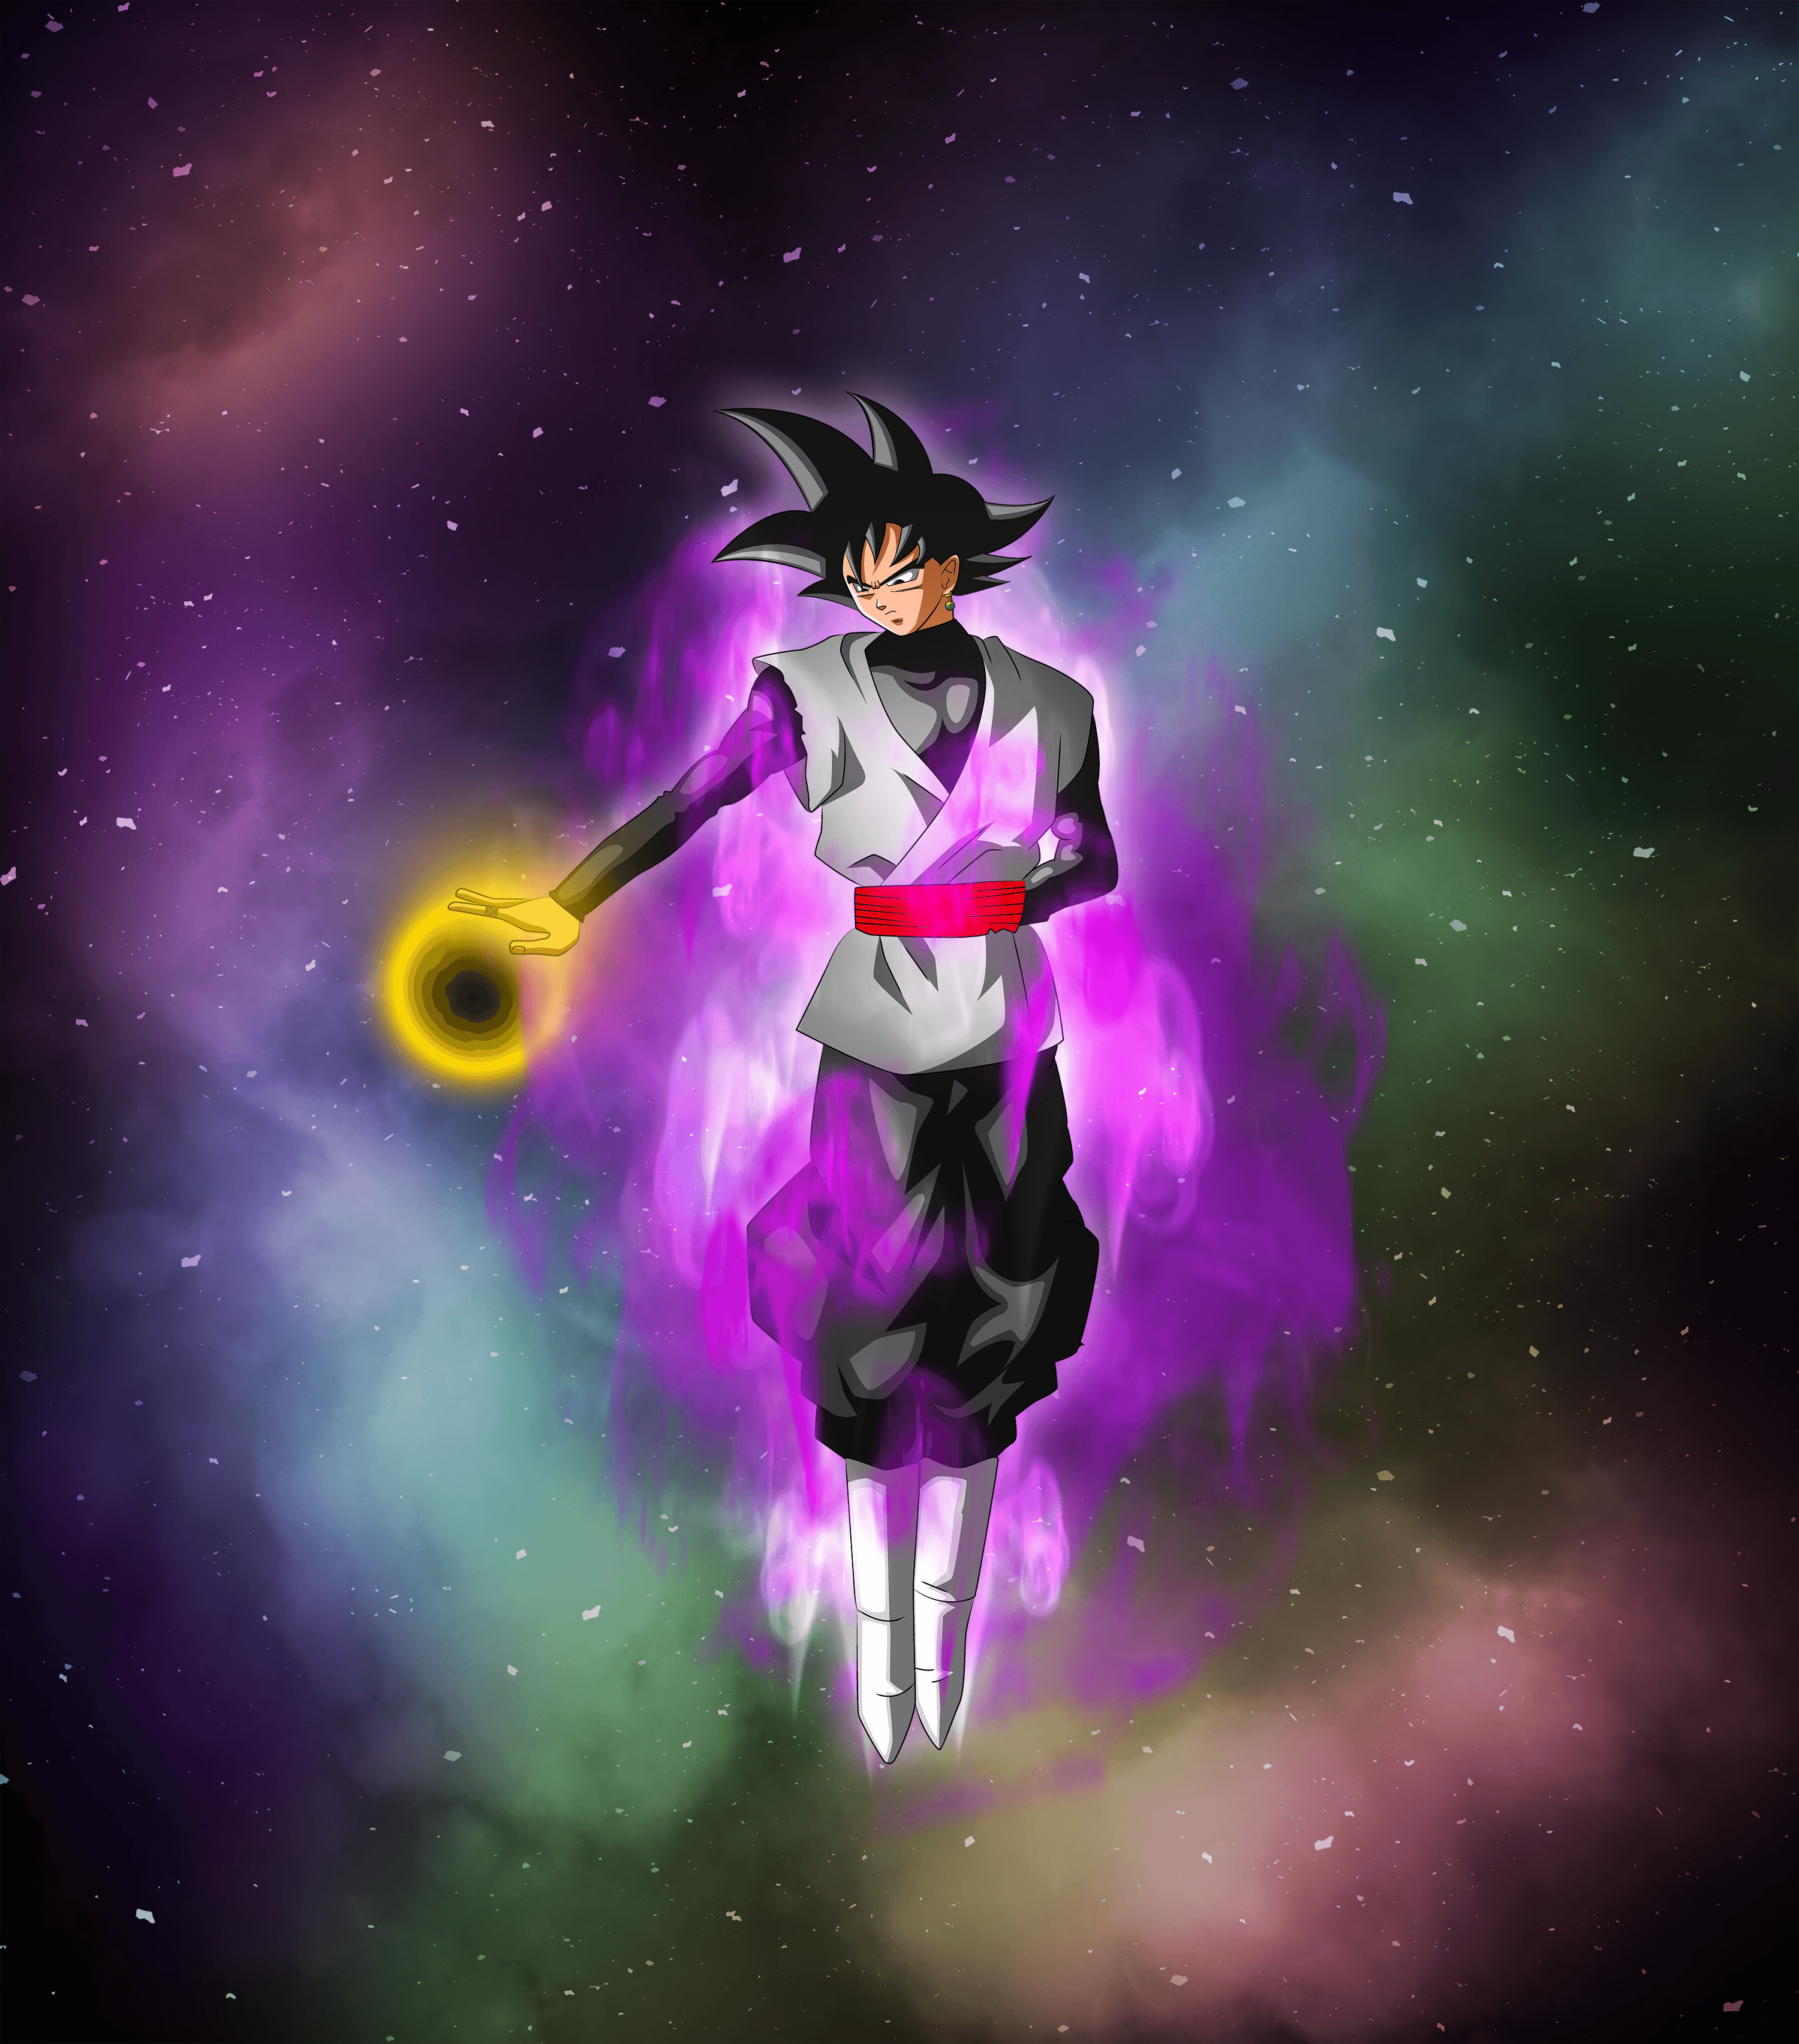 Wallpapers on DragonBall